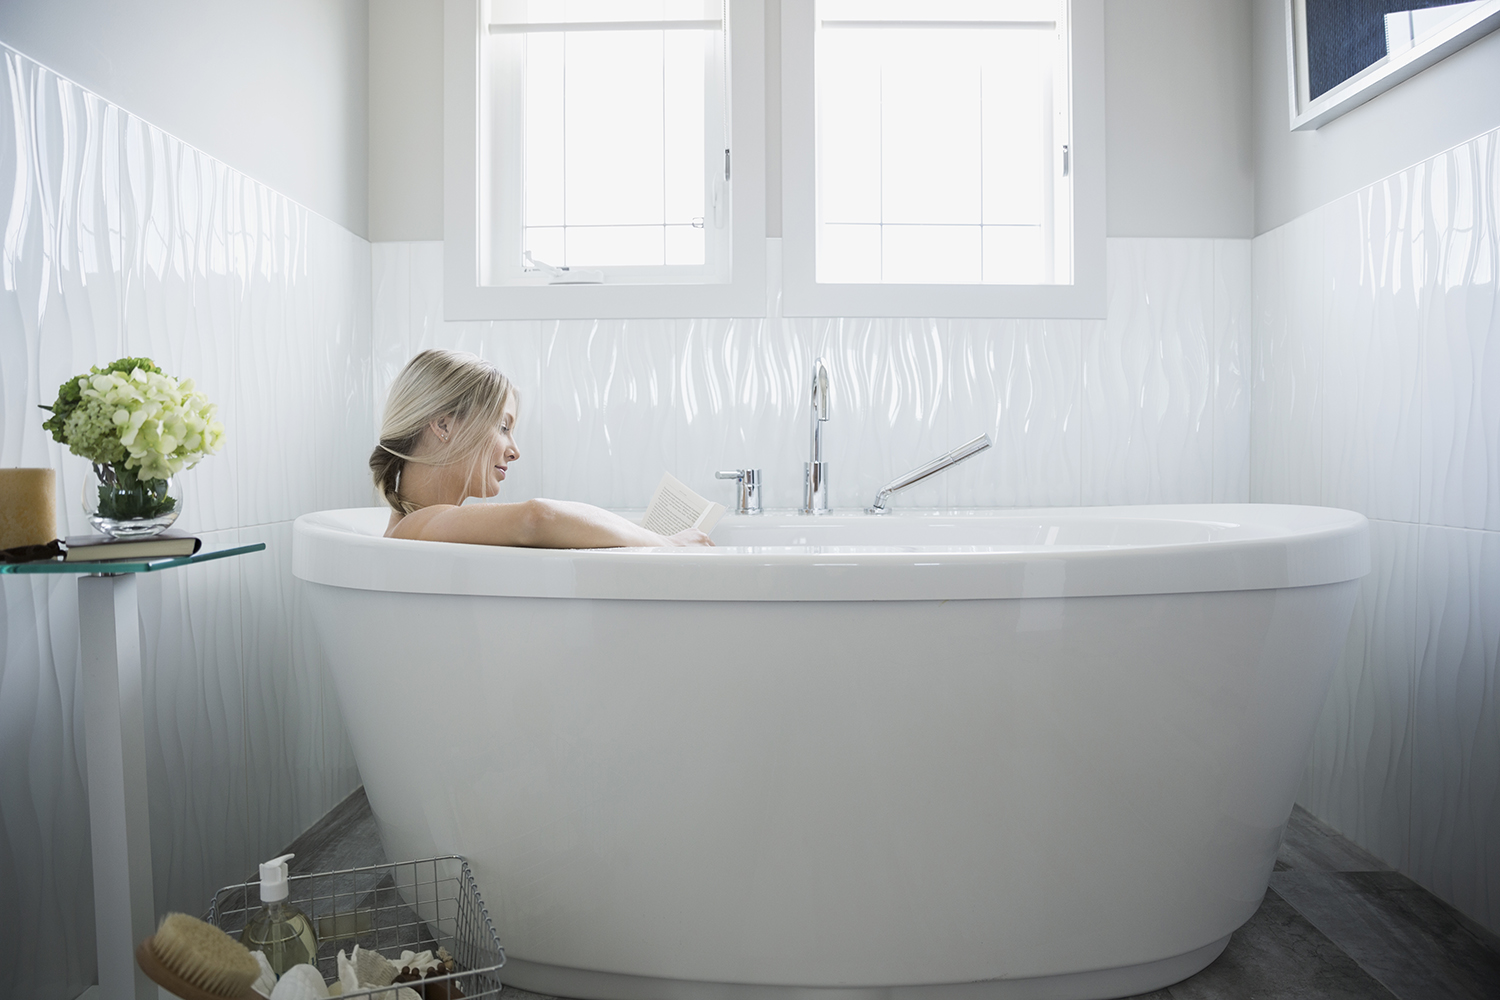 Woman Reading a Book in the Bath